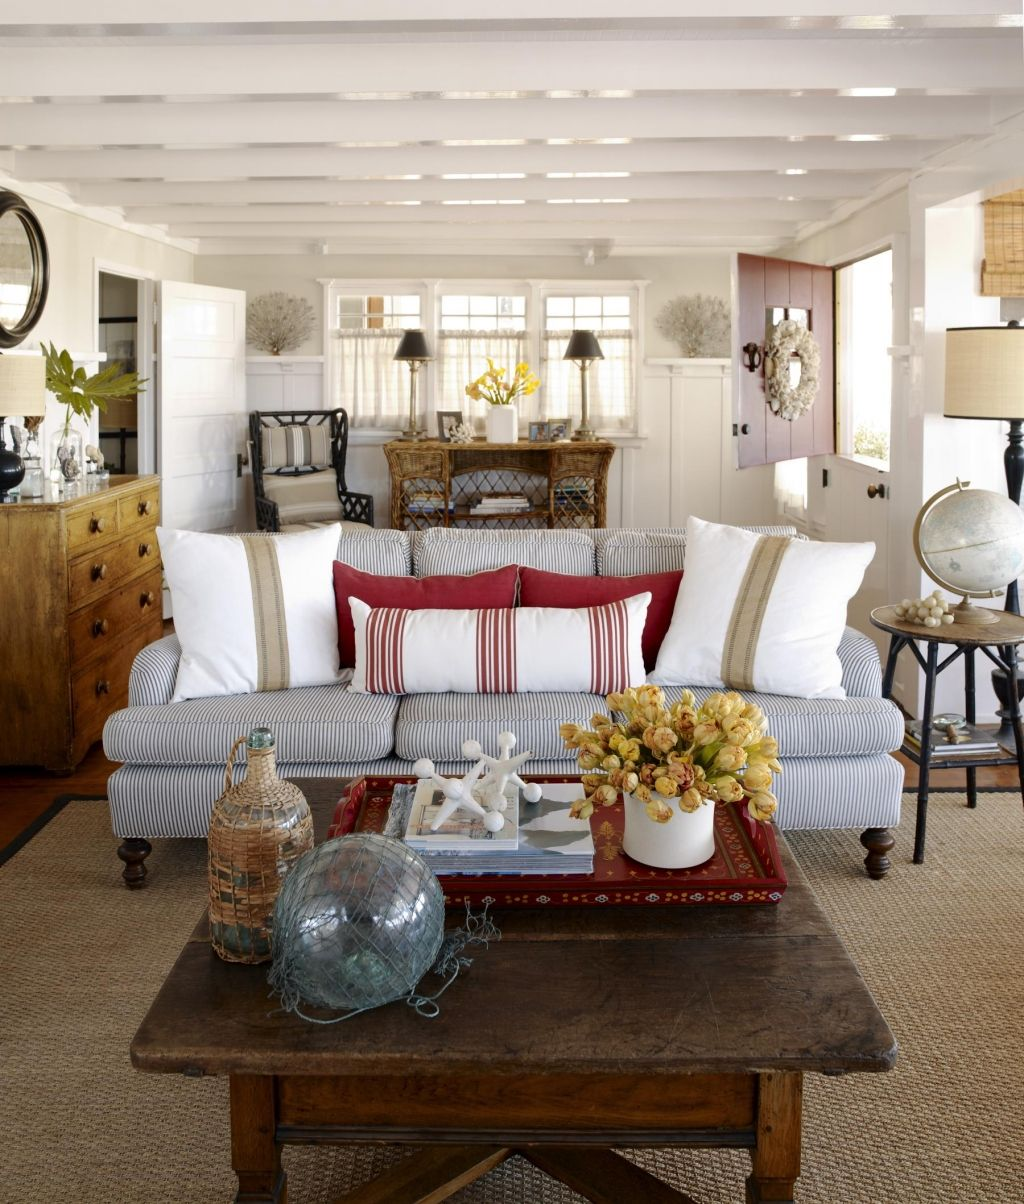 Cottage Decorating Apartment Living Room Decorating Ideas Review Cottage Living Rooms Cottage Style Decor Cottage Interiors Decorating cottage living rooms